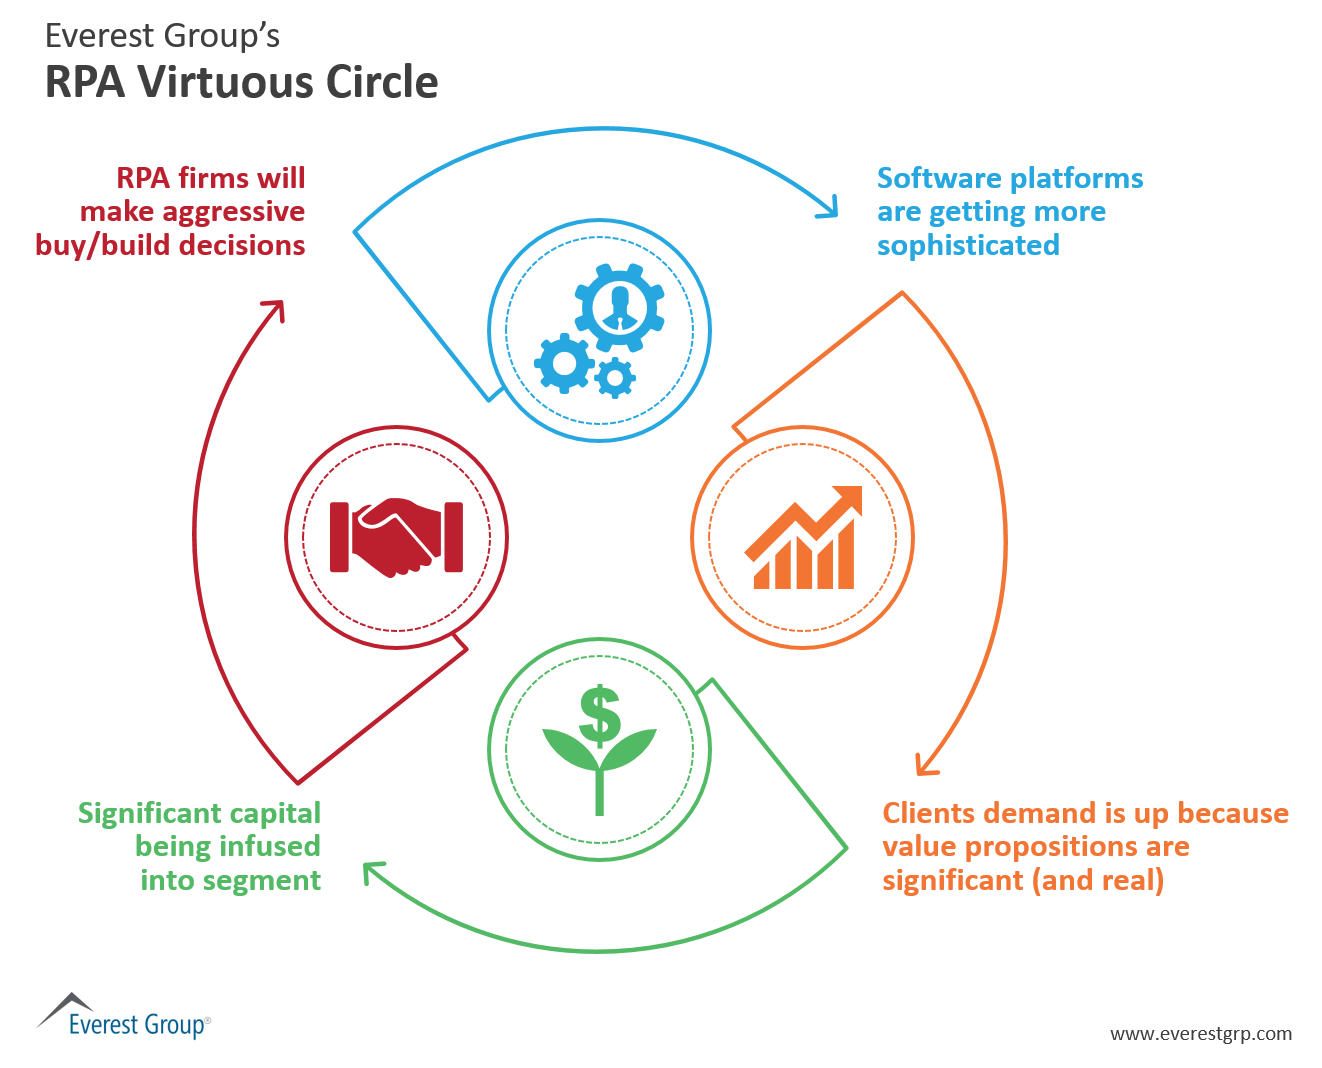 See Everest Group's RPA Virtuous Circle